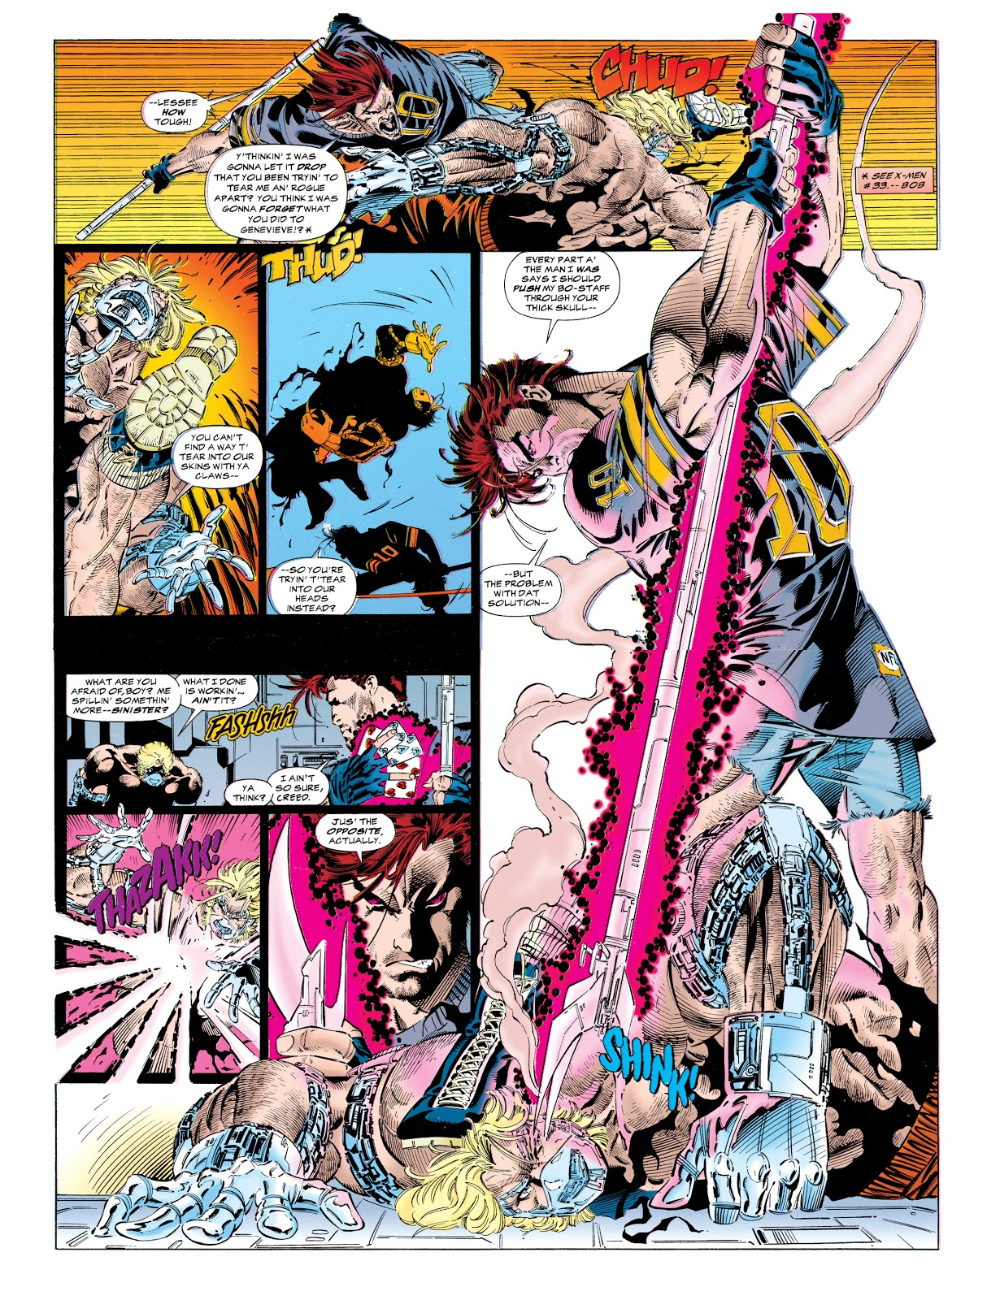 X Men 1991 Issue 38 Read X Men 1991 Issue 38 Comic Online In High Quality In 2020 Comics Comics Online Comic Books